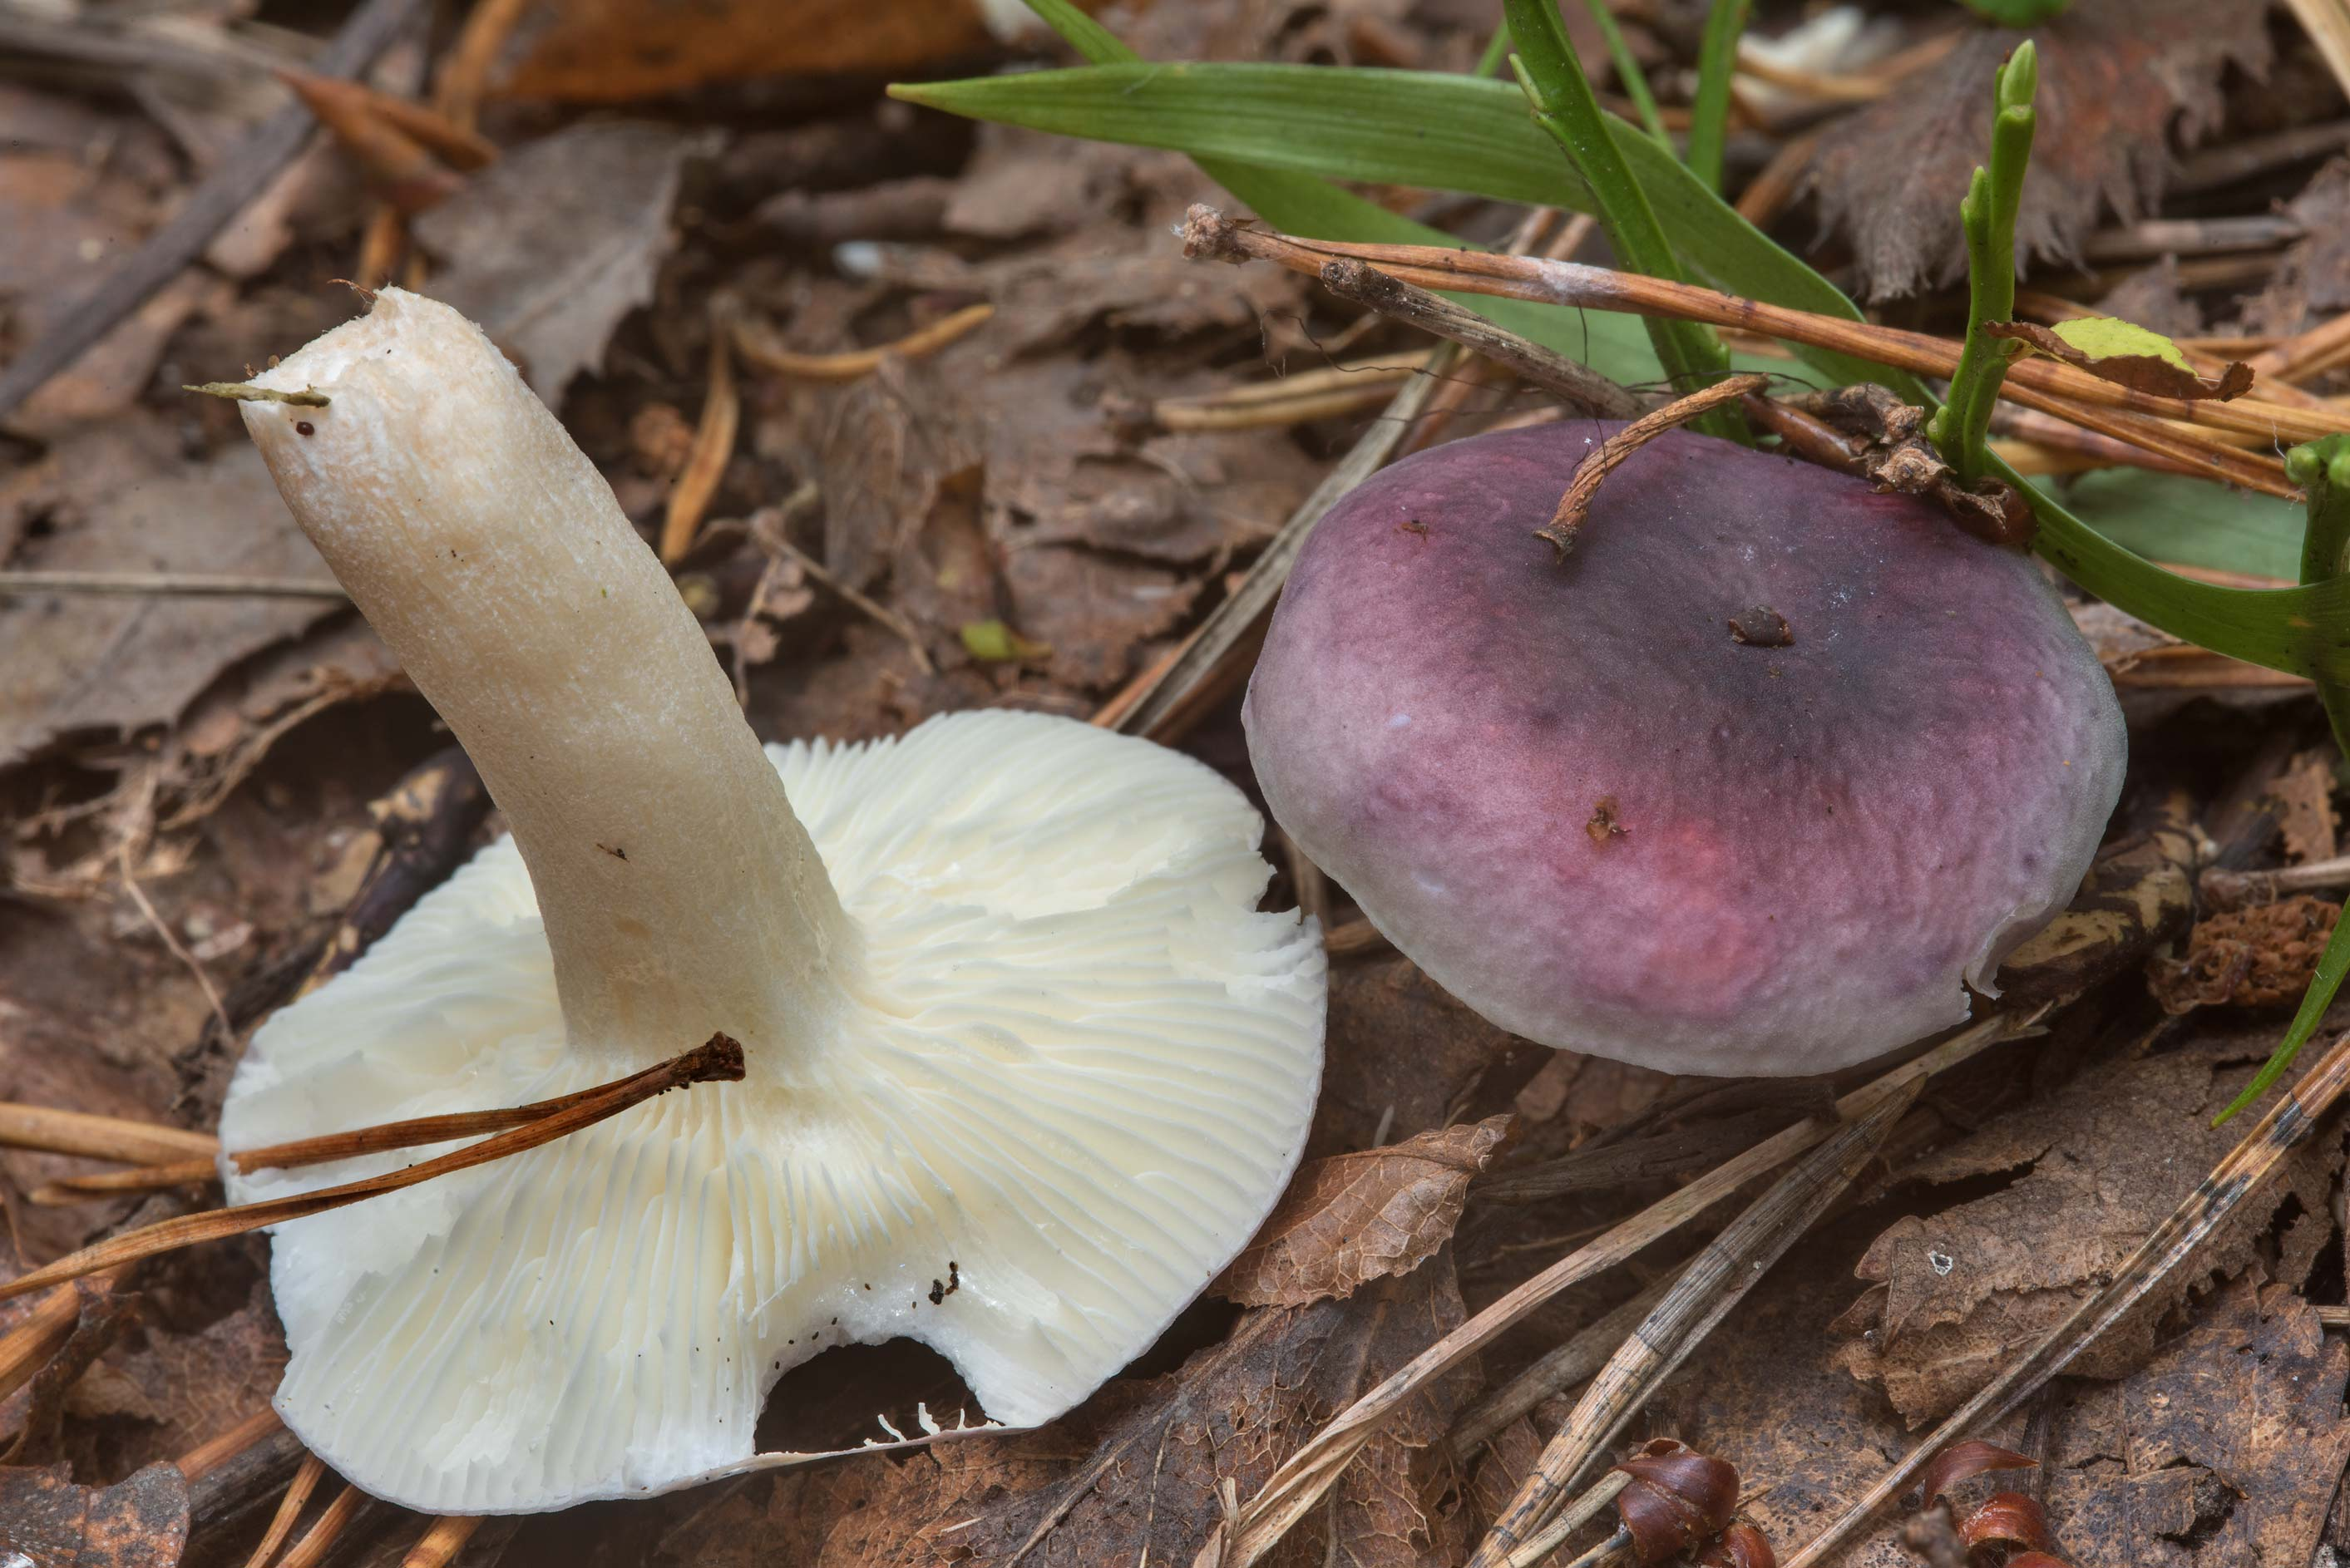 Pair of violet brittlegill mushrooms (Russula...north-west from St.Petersburg. Russia